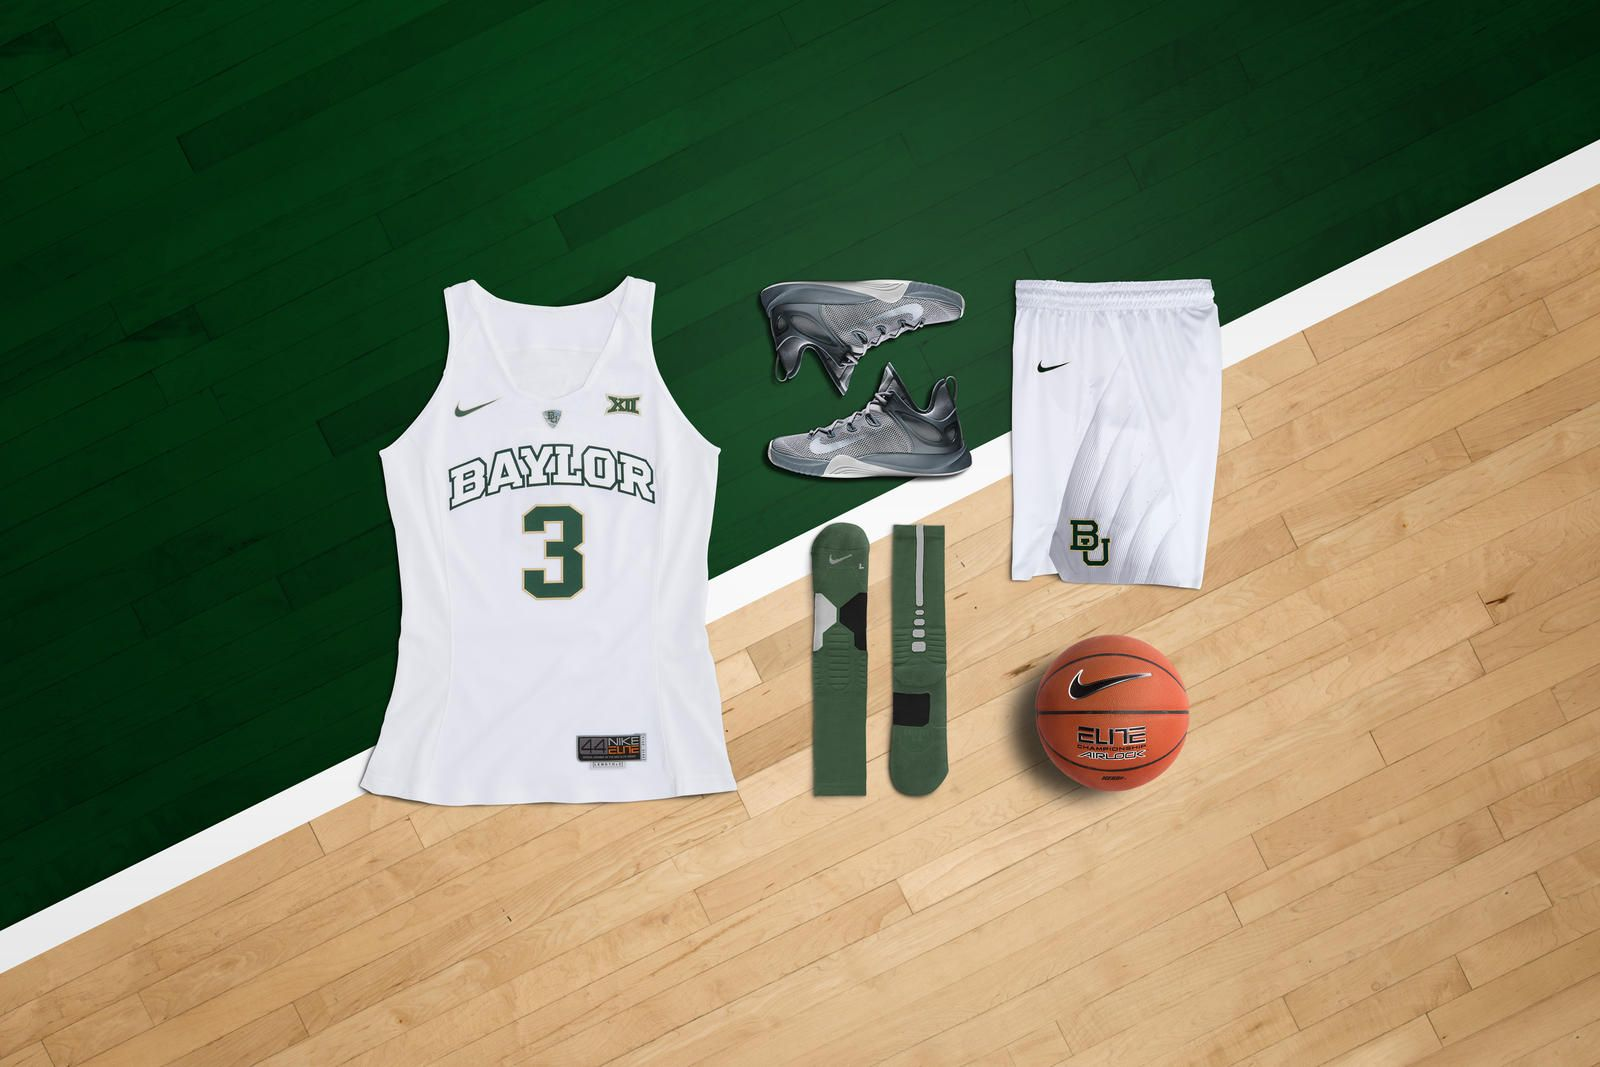 ad1eec2c4274 Nike News - Eight NCAA Basketball Teams Ready for Rivalries with New Nike  Uniforms